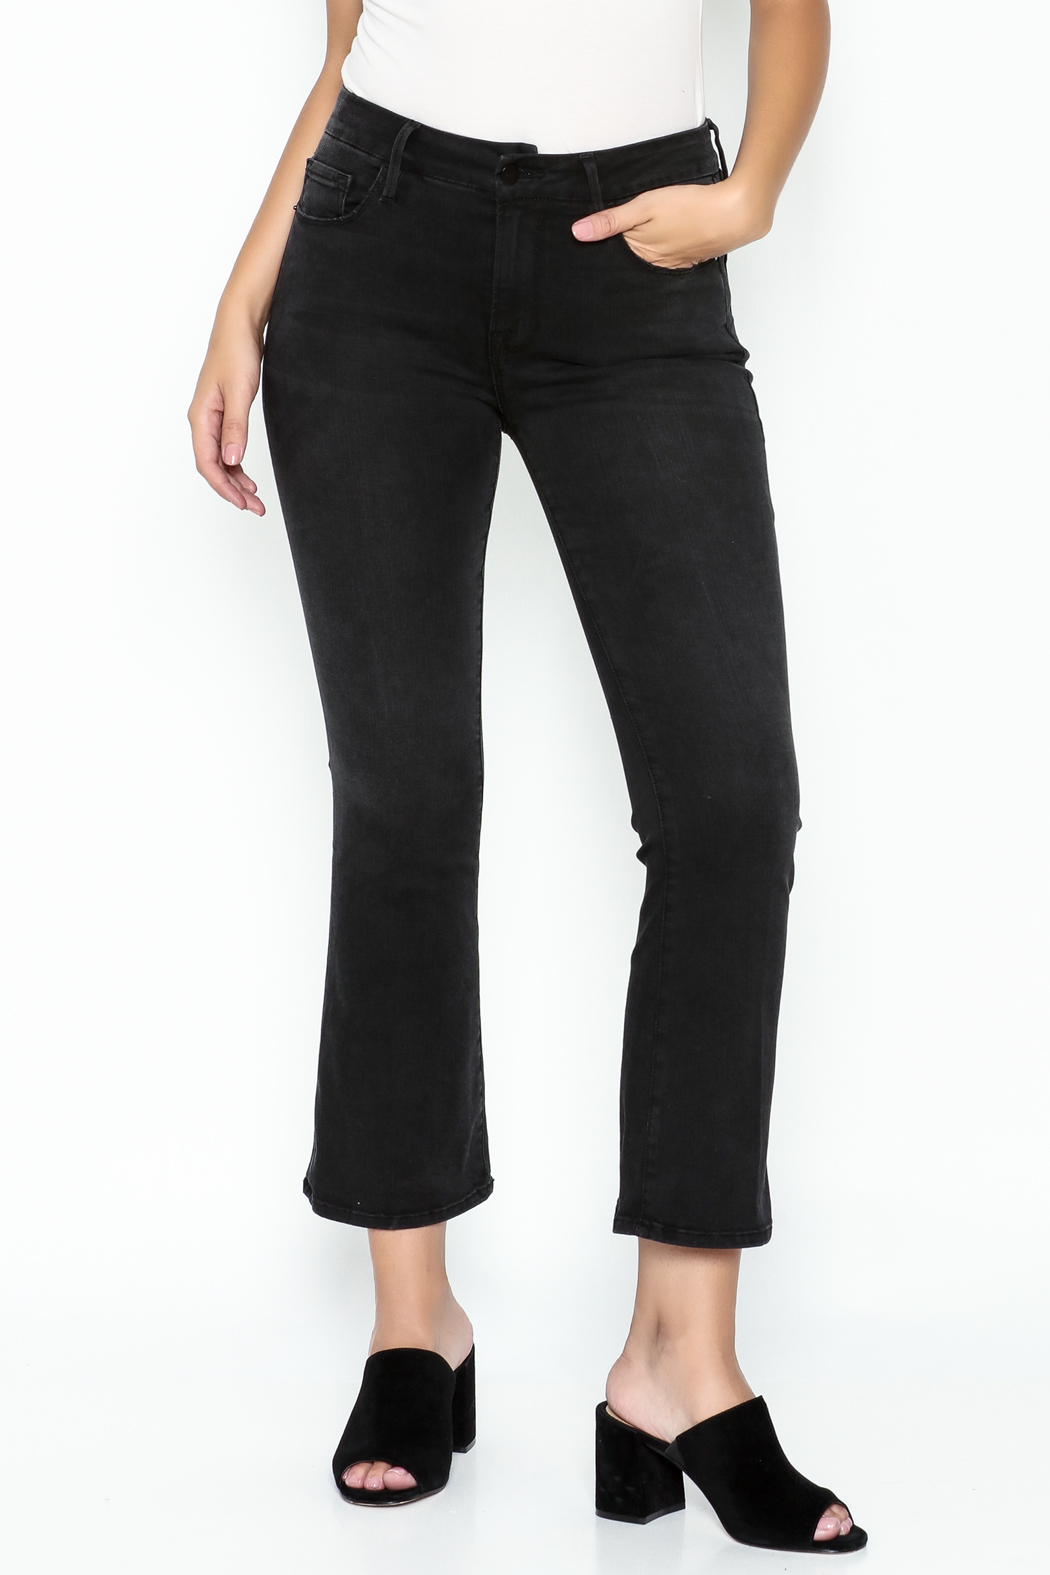 FRAME Denim Black Cropped Flare Jeans from New York City by Jessie ...